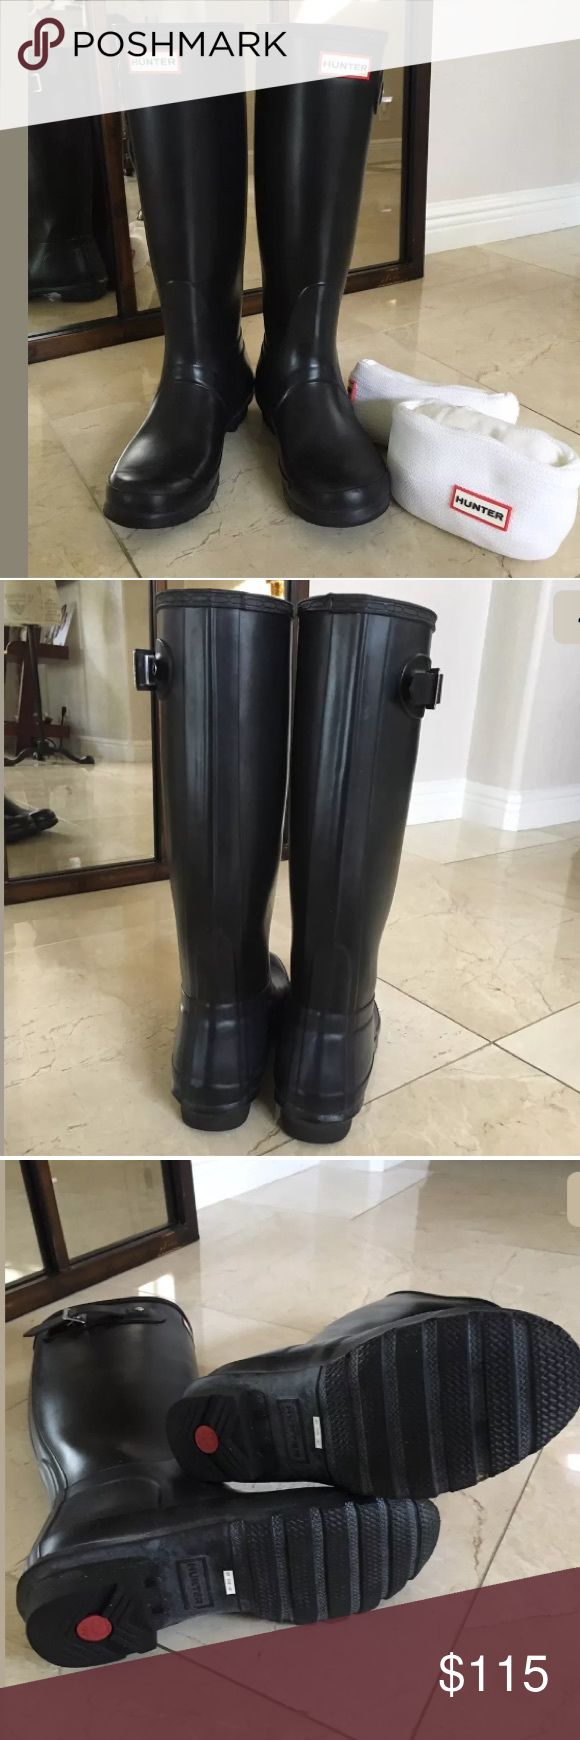 Hunter Tall WELLINGTON Boots Women's Size 7 Hunter Tall WELLINGTON Boots Women's Size 7 w/Set Of New WELLY Cable Knit Socks. Black Tall Wellington Boots. Size Medium. Hardly Worn Like New! White Welly Cable Knit Socks (New-Never Worn) Hunter Boots Shoes Winter & Rain Boots